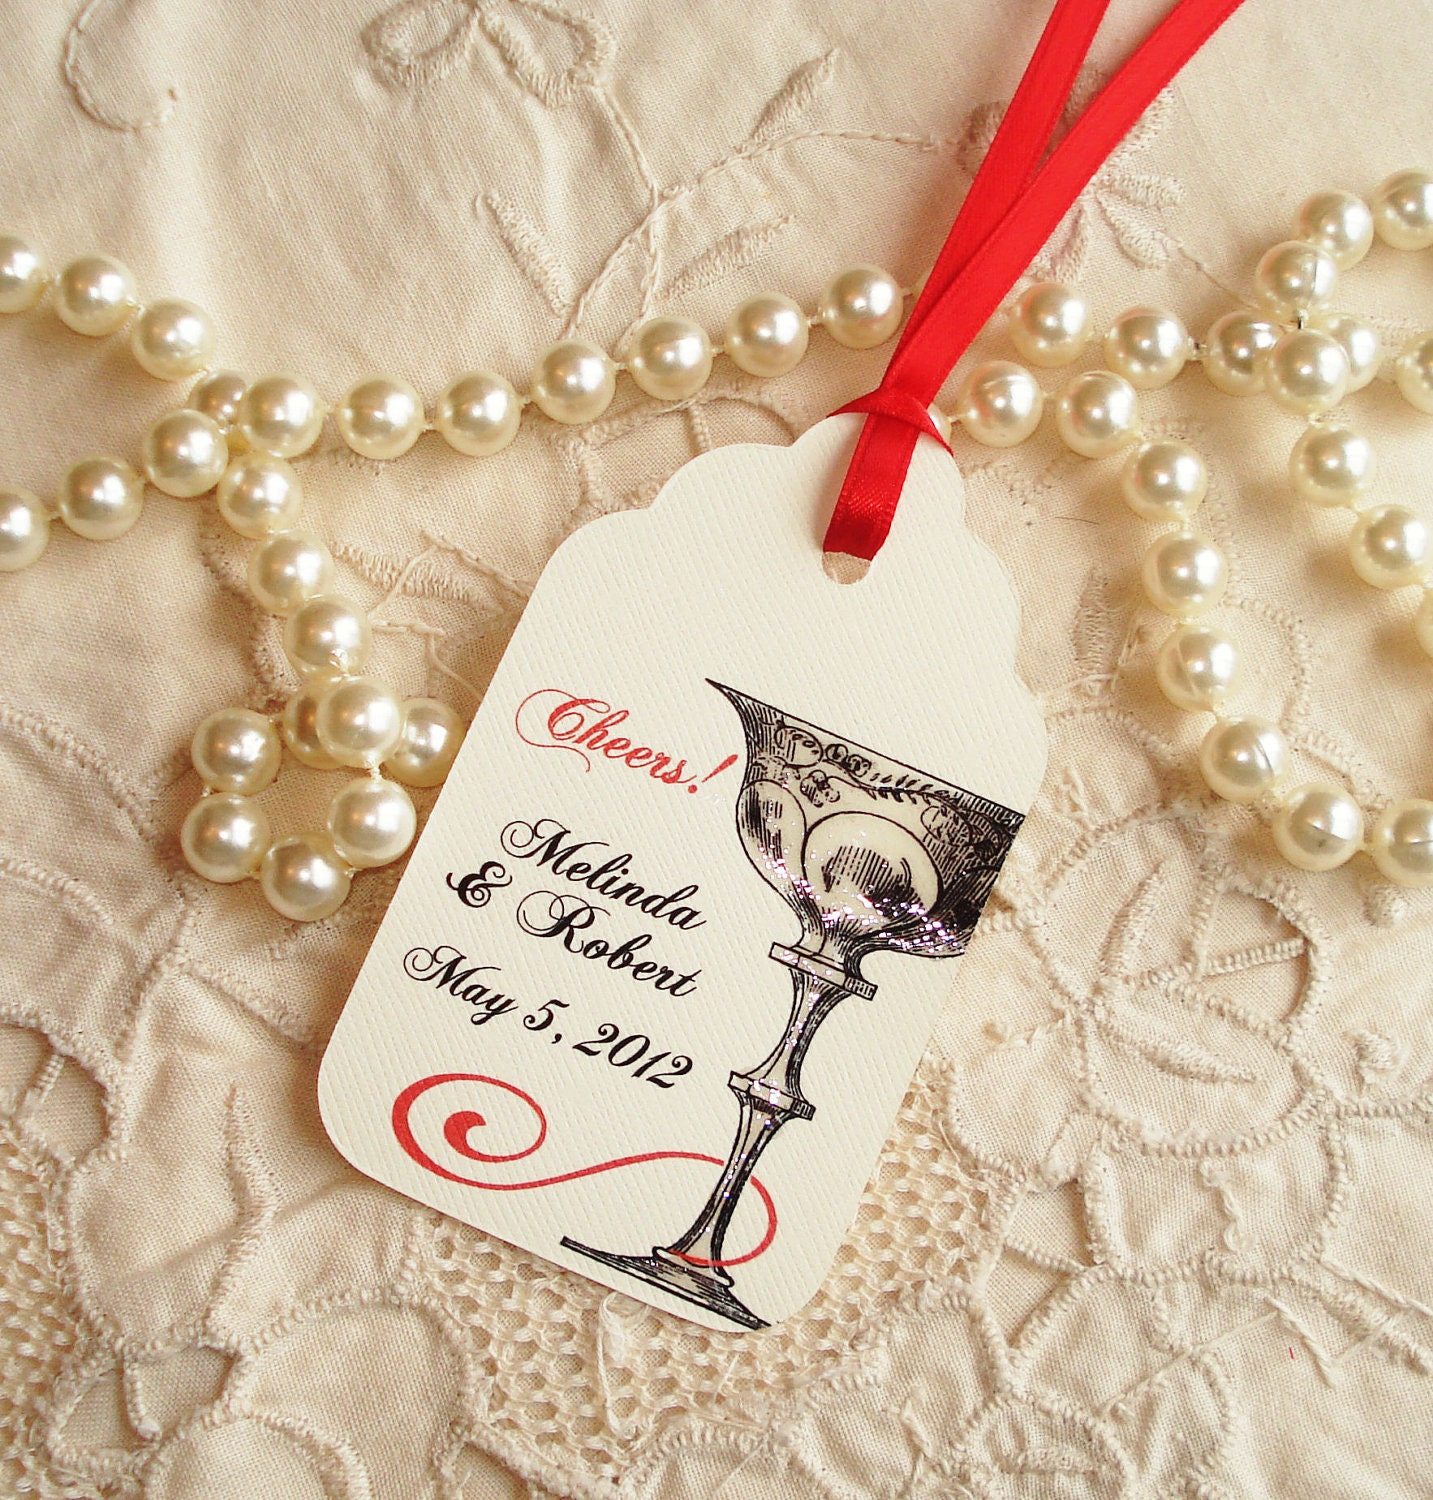 Cheers Champagne Personalized Wishing Tree Tag Tags Wedding Anniversary Bridal Shower Bachelorette Party Customized Name Date Color 003